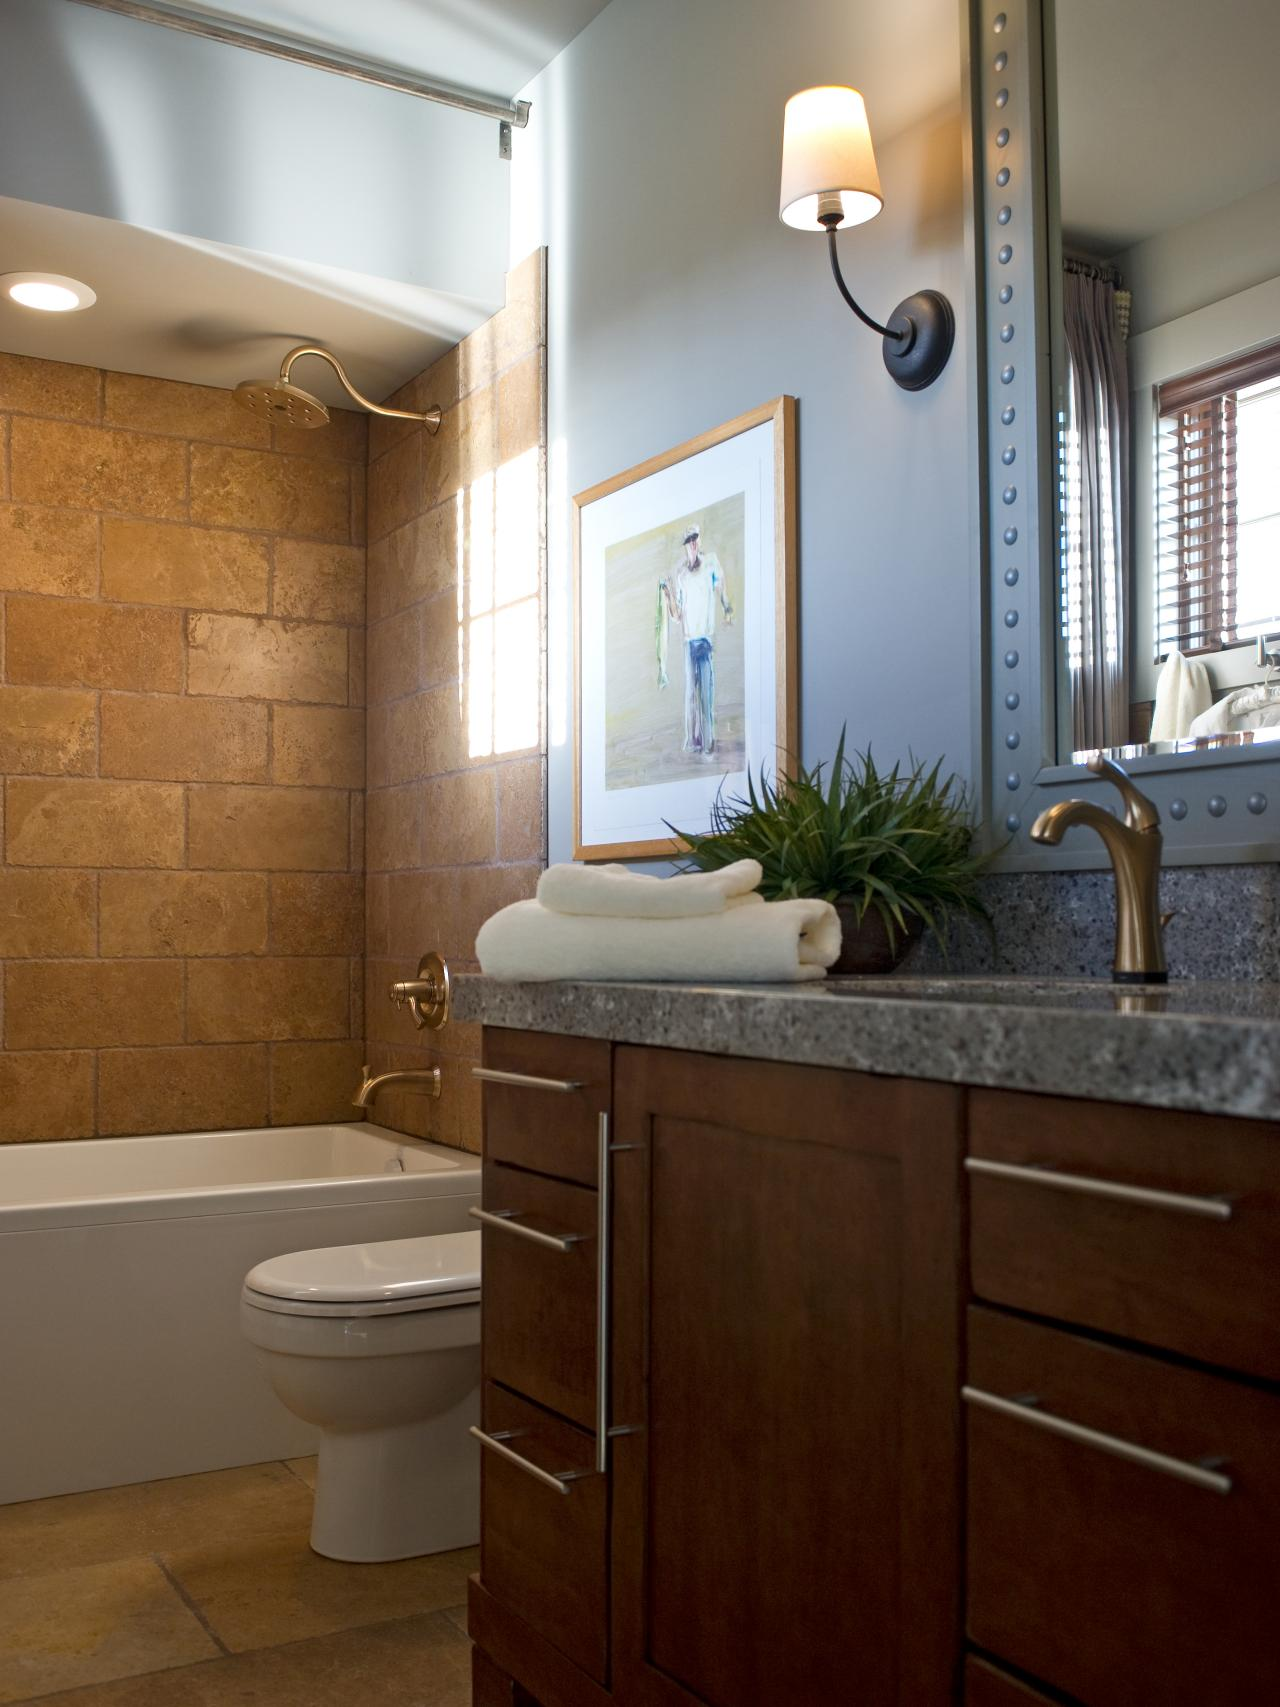 34 Stunning Pictures And Ideas Of Natural Stone Bathroom